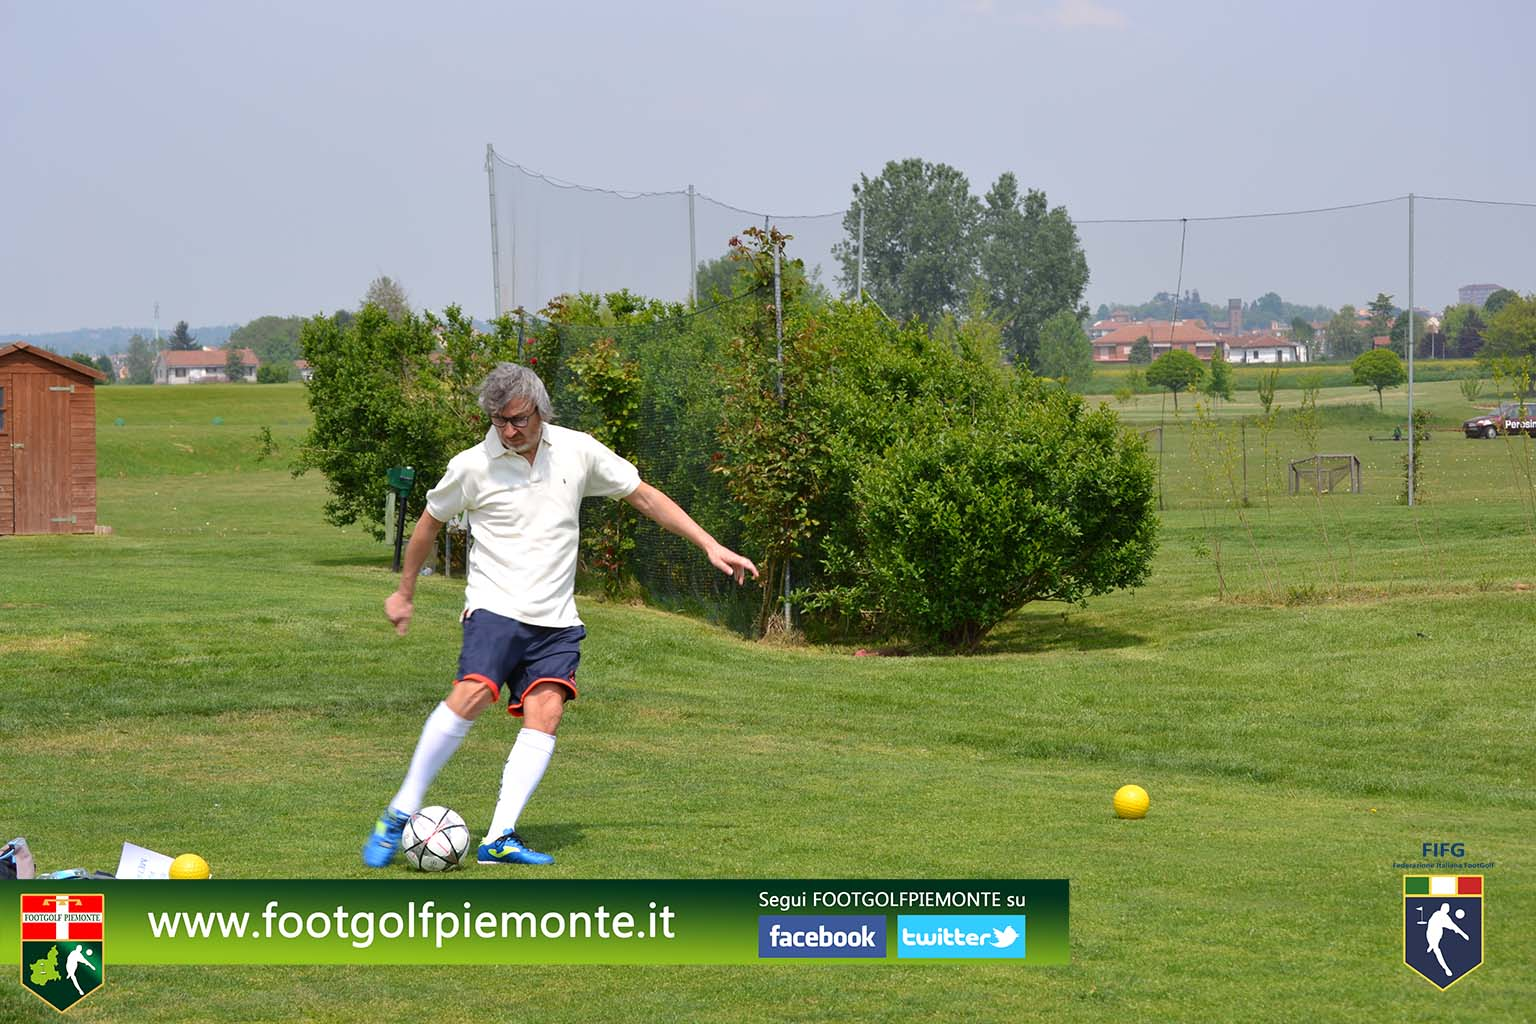 FOTO 9 Regions' Cup Footgolf Piemonte 2016 Golf Città di Asti (At) 30apr16-36